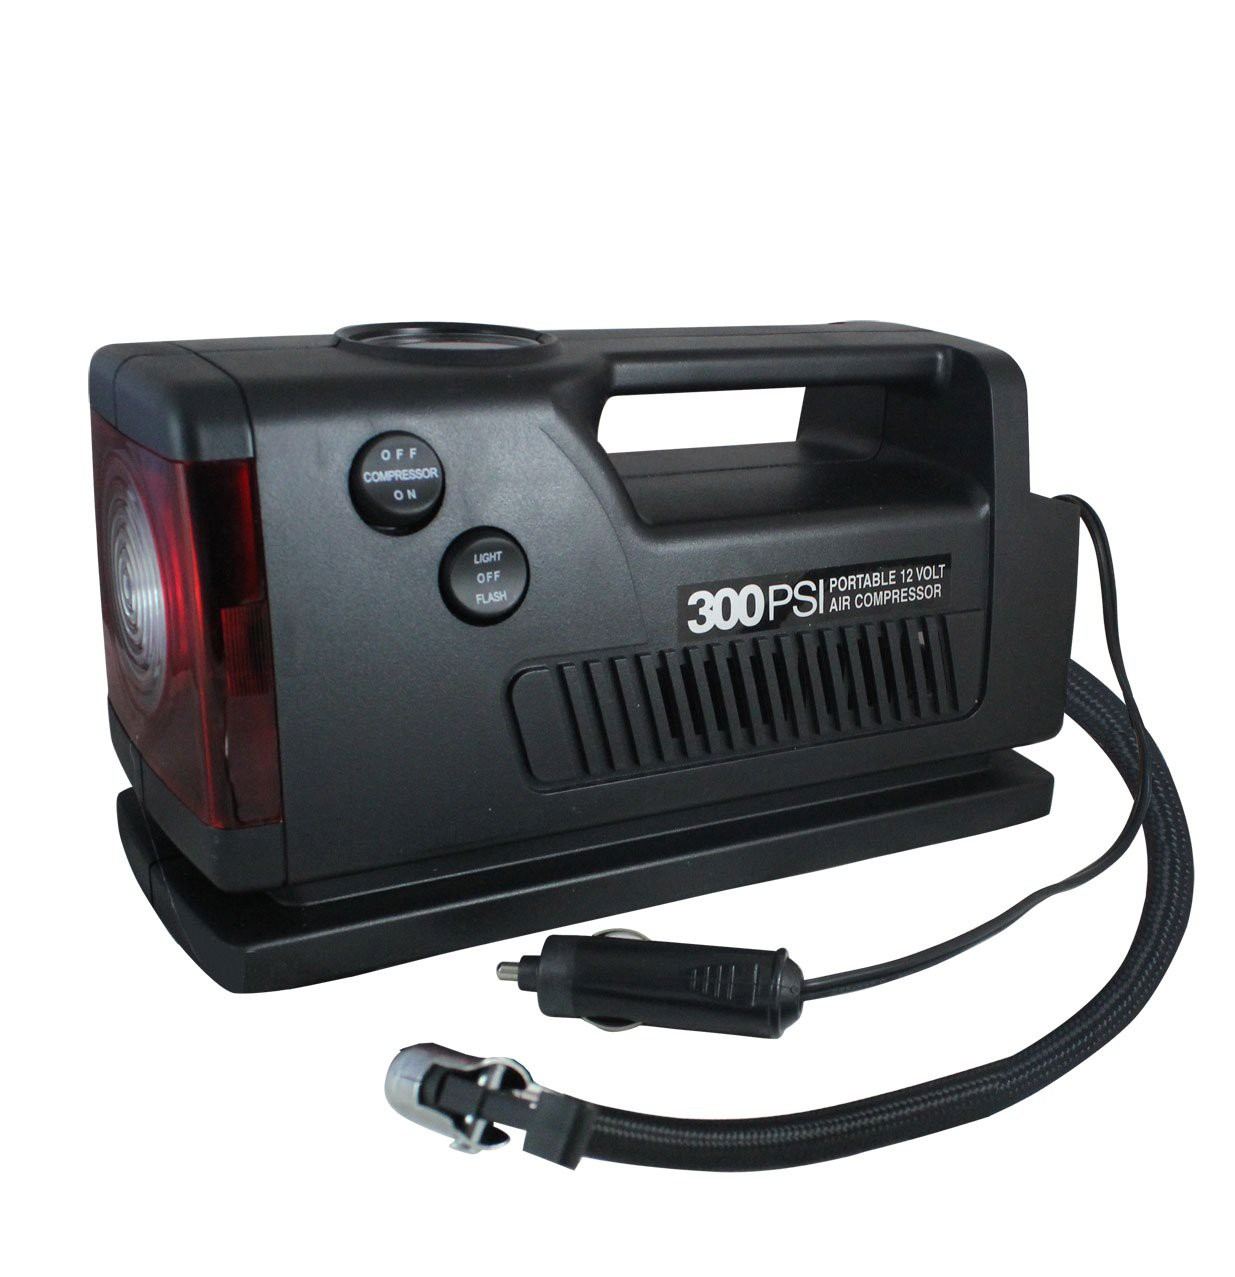 coido-3326-car-tyre-inflator-with-torch-emergency-flasher-and-300-psi-gauge